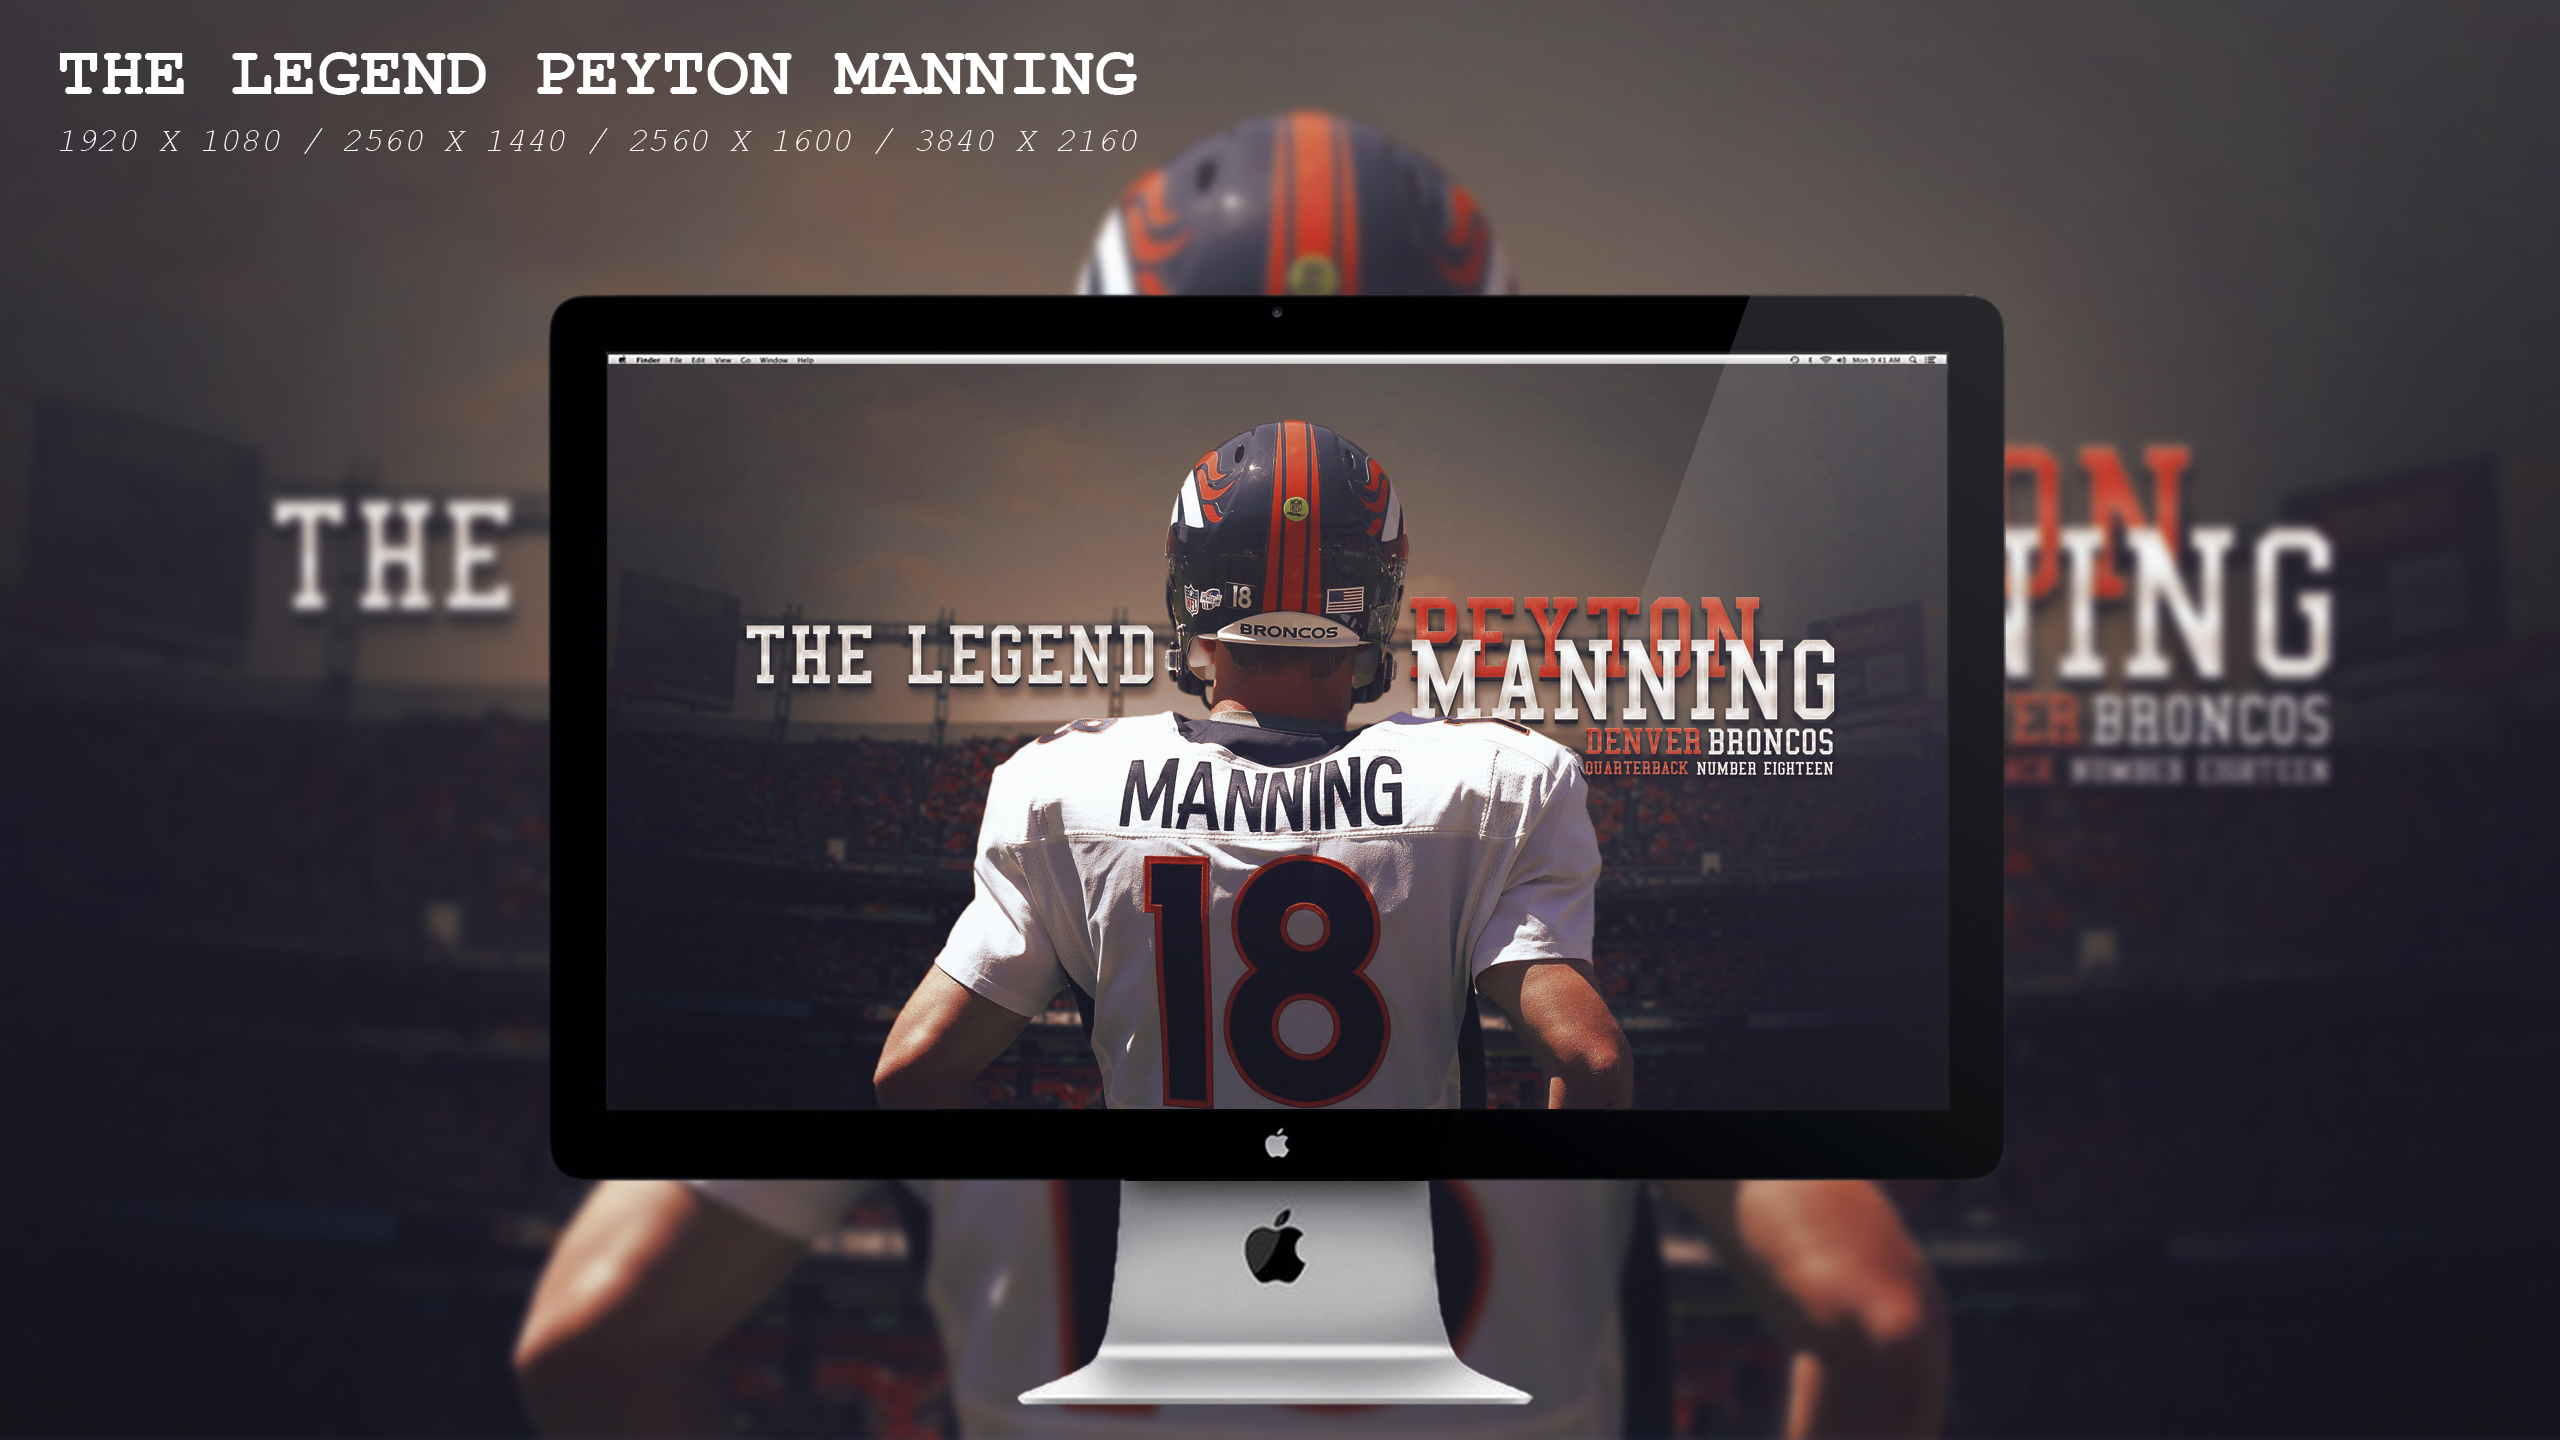 Legend peyton manning wallpaper hd by beaware8 on deviantart the legend peyton manning wallpaper hd by beaware8 voltagebd Choice Image